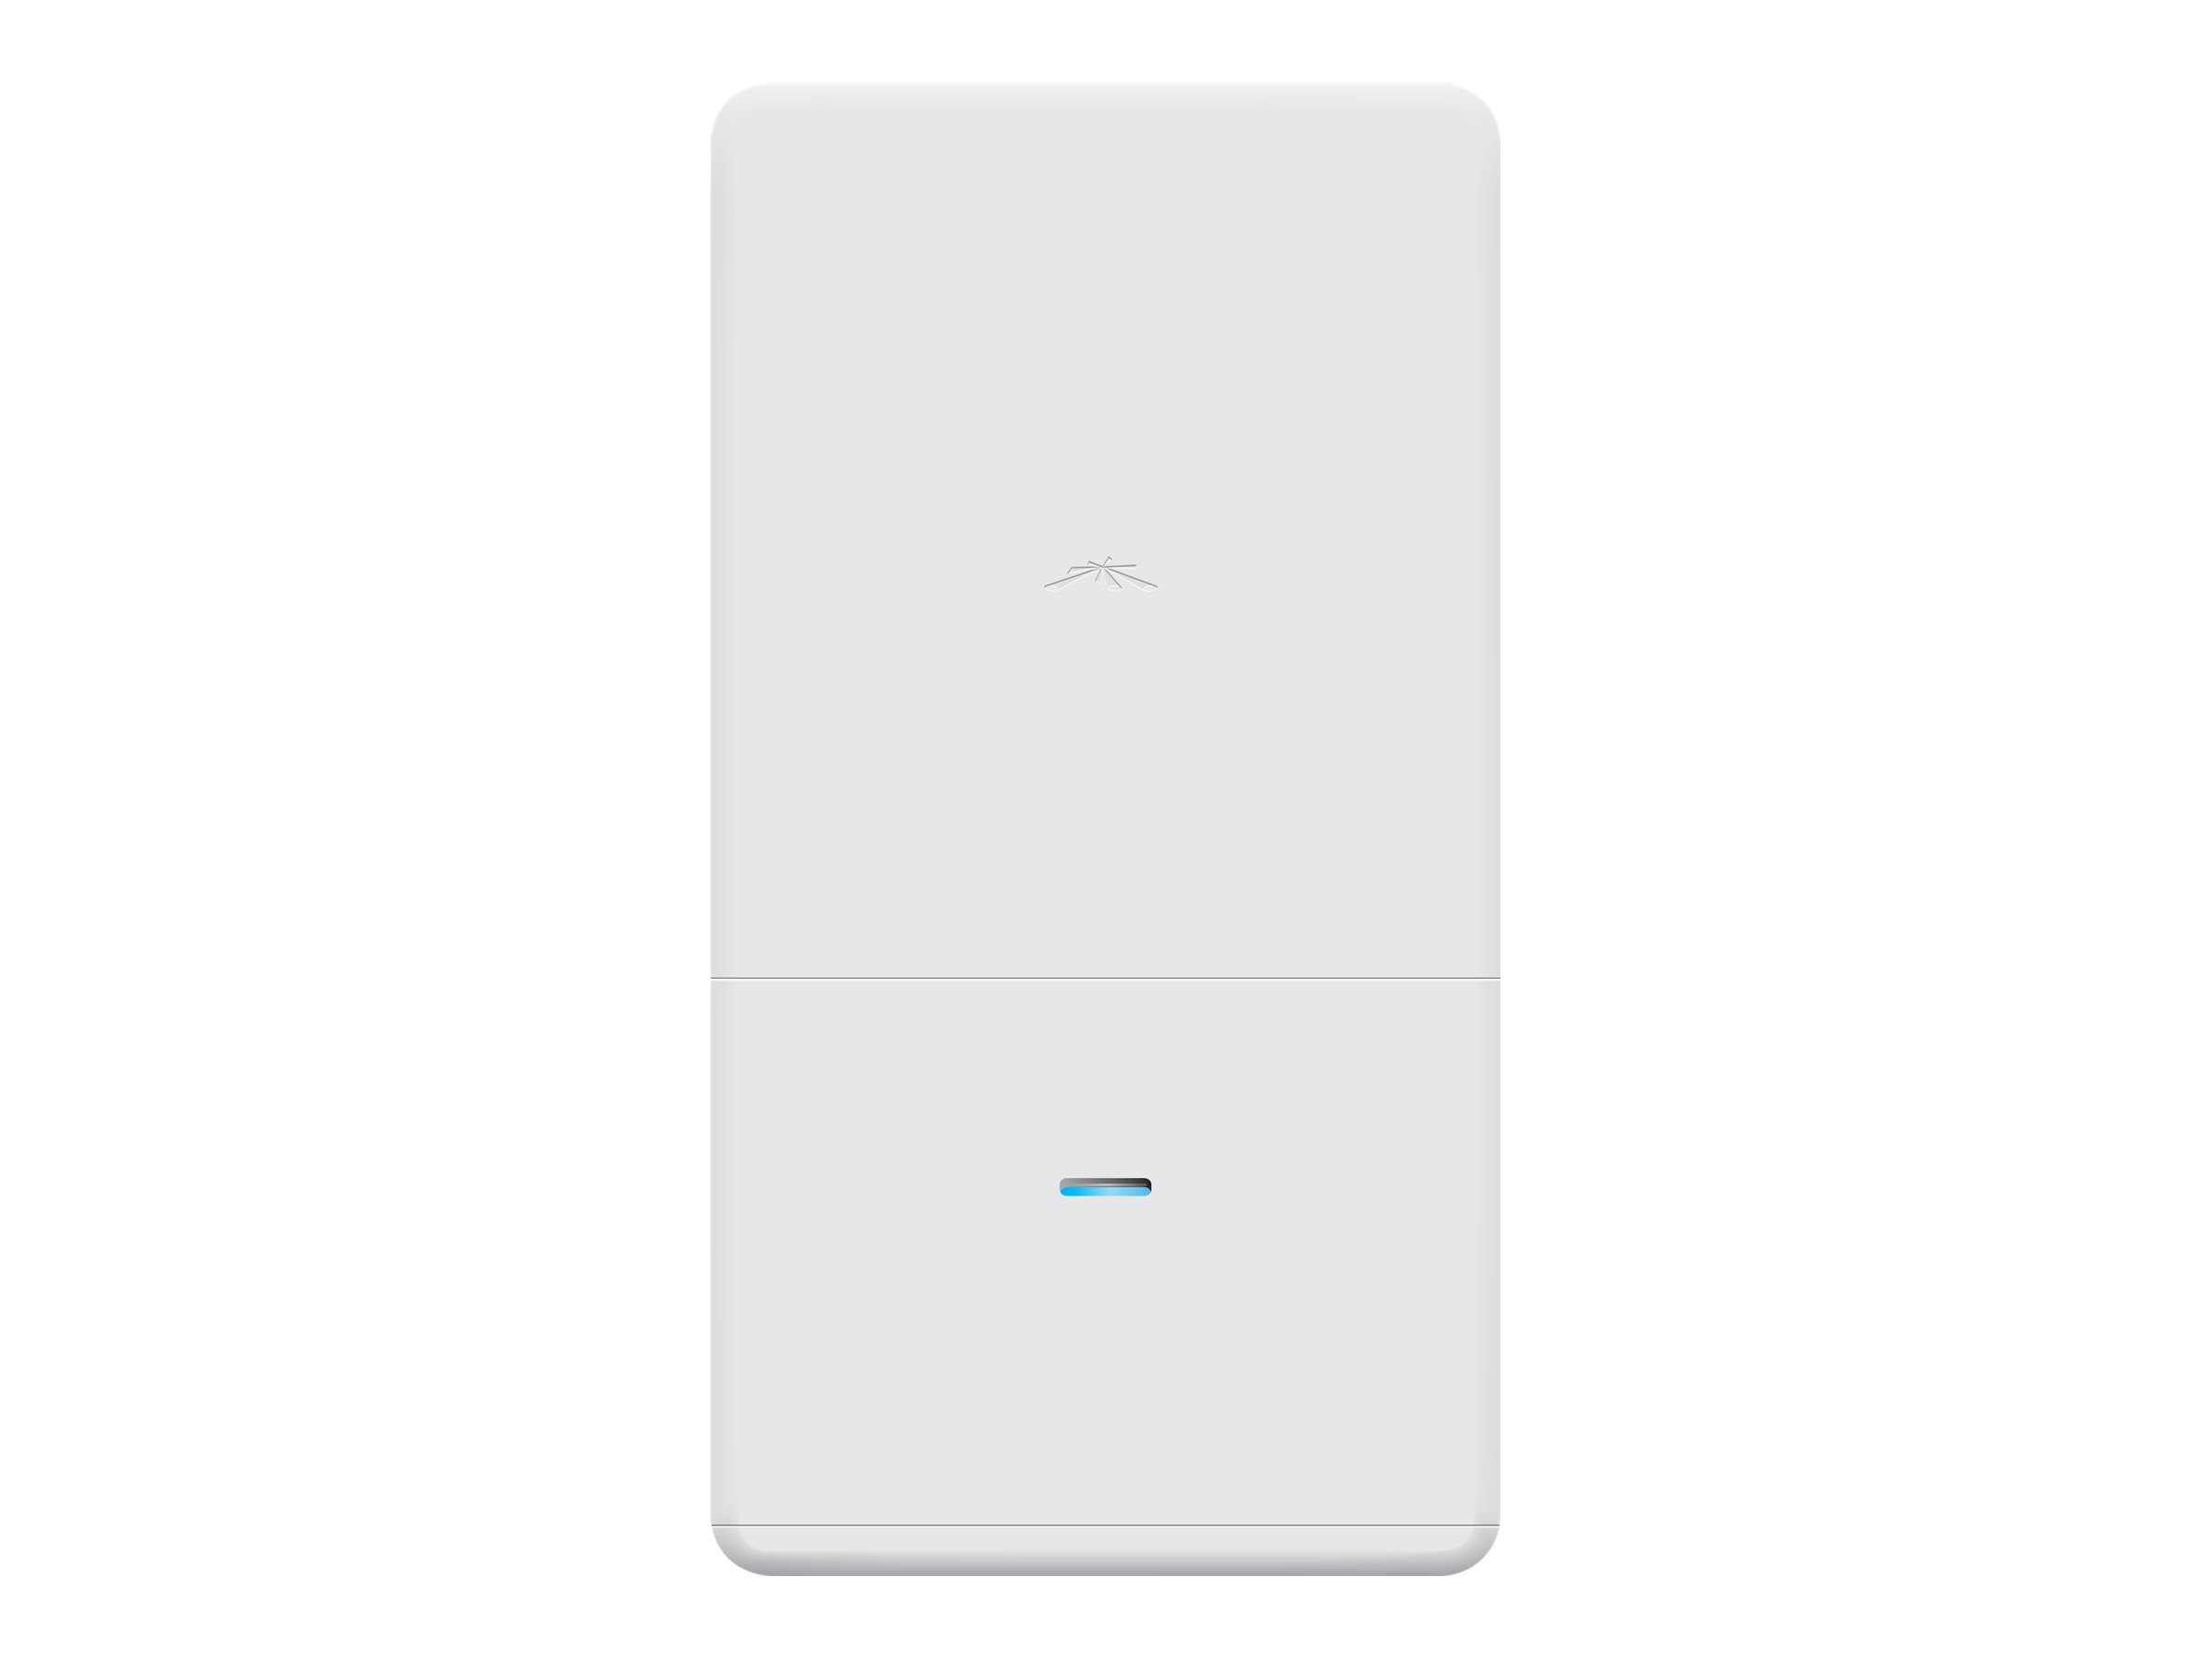 Ubiquiti Unifi AP AC Outdoor Wireless, UAP-AC-OUTDOOR, 18134277, Wireless Access Points & Bridges